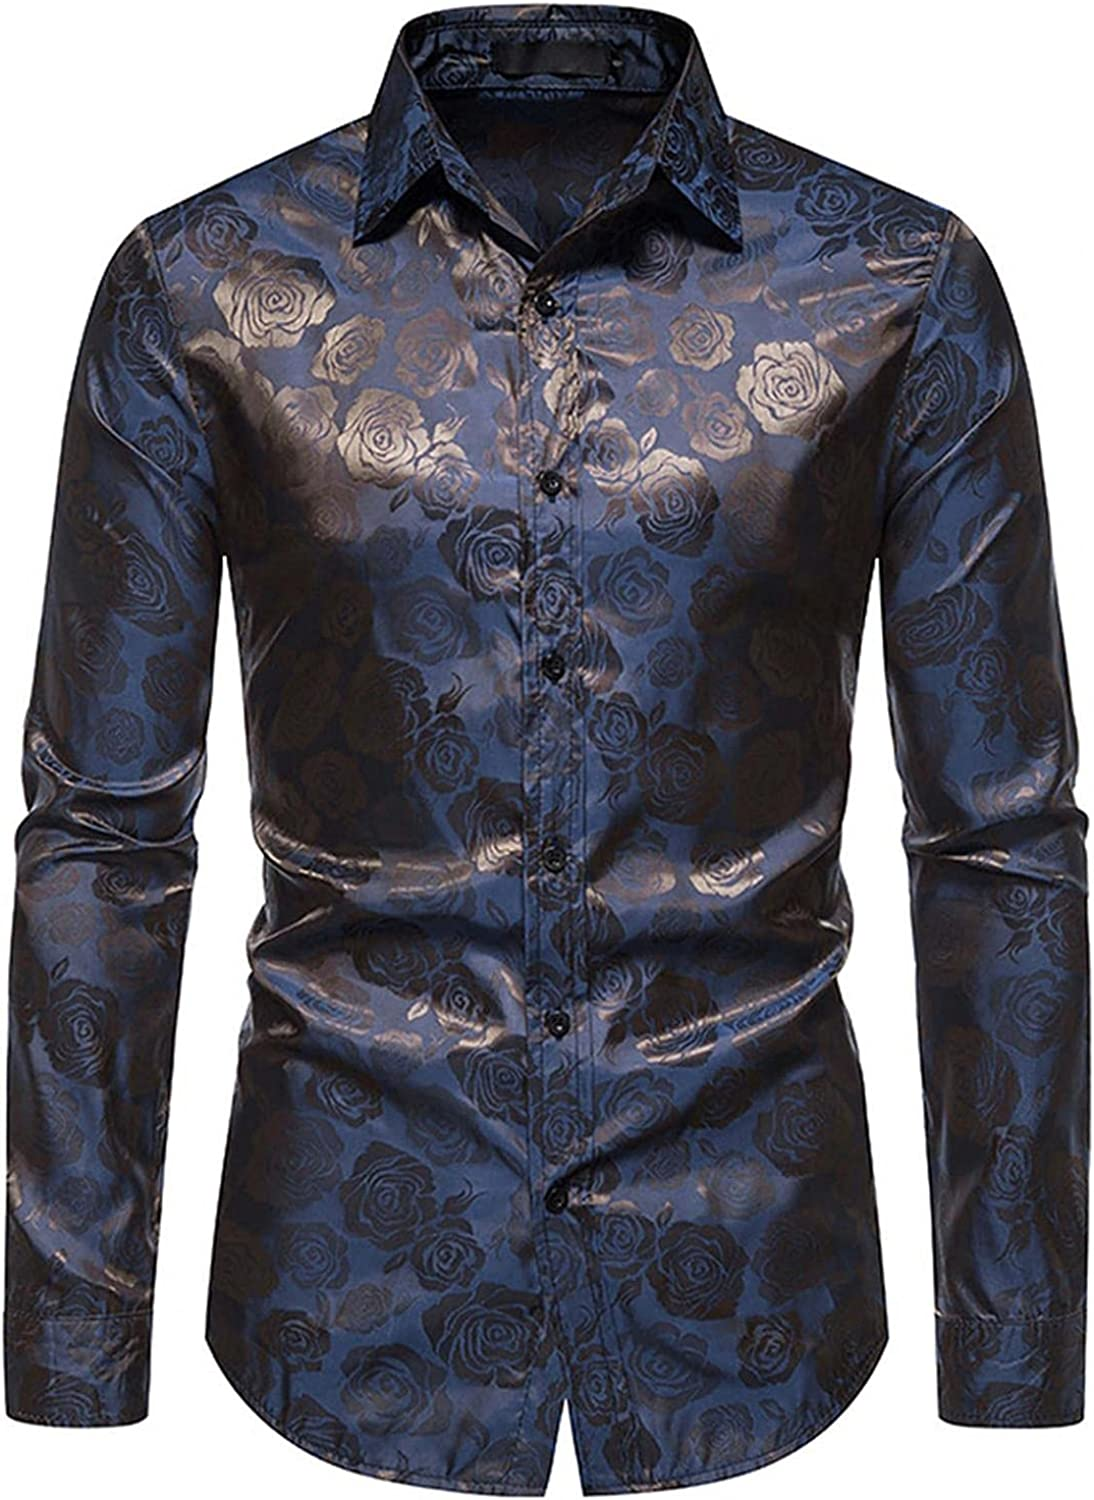 FUNEY Mens Button Down Long Sleeve Shirts Slim Fit Floral Rose Printed Design Shirts Prom Wedding Party Business Dress Shirt